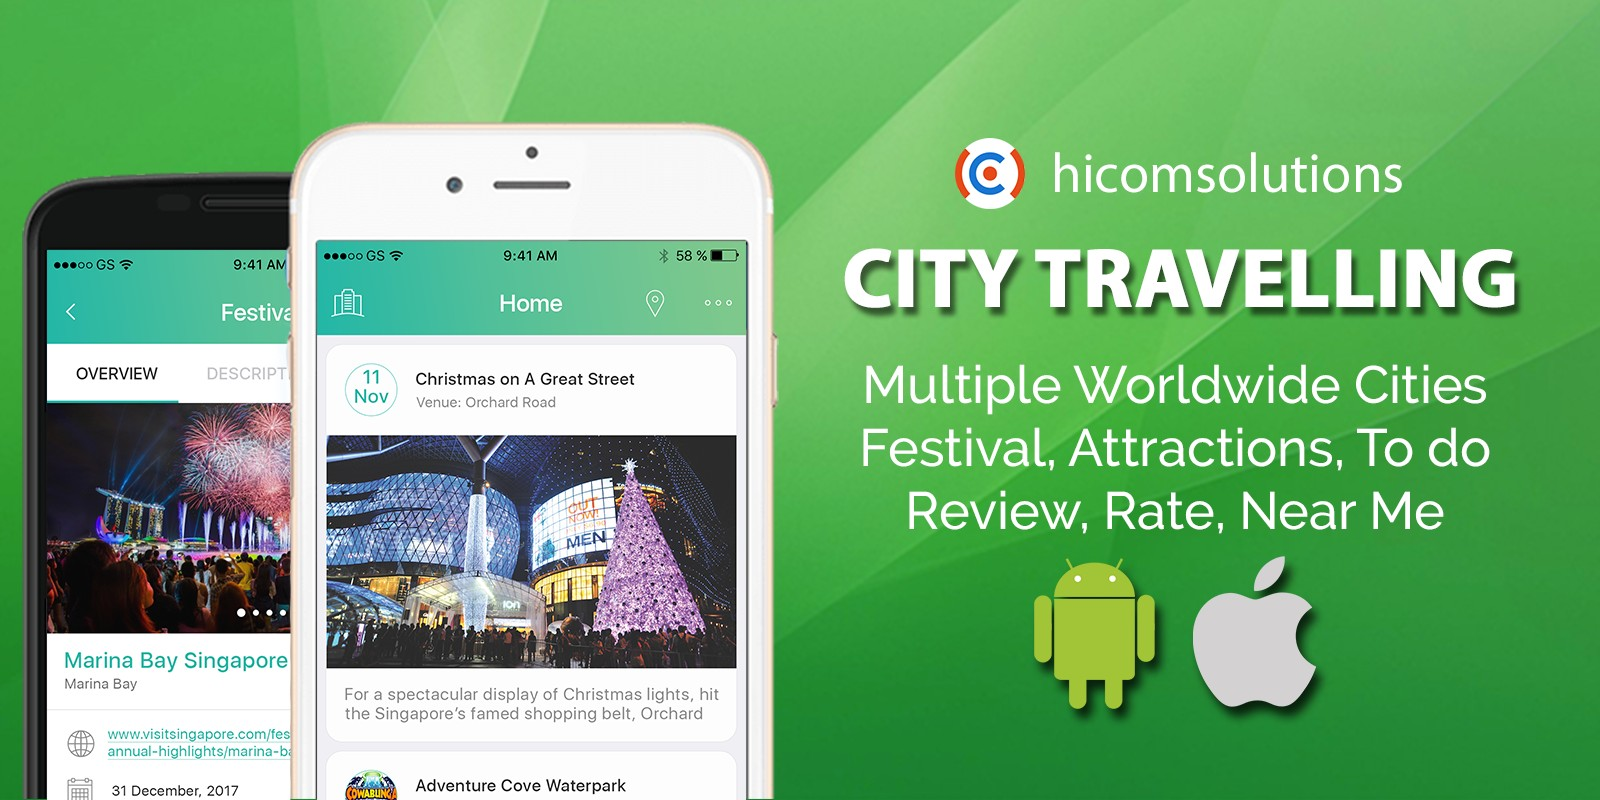 City Travelling Information Android App